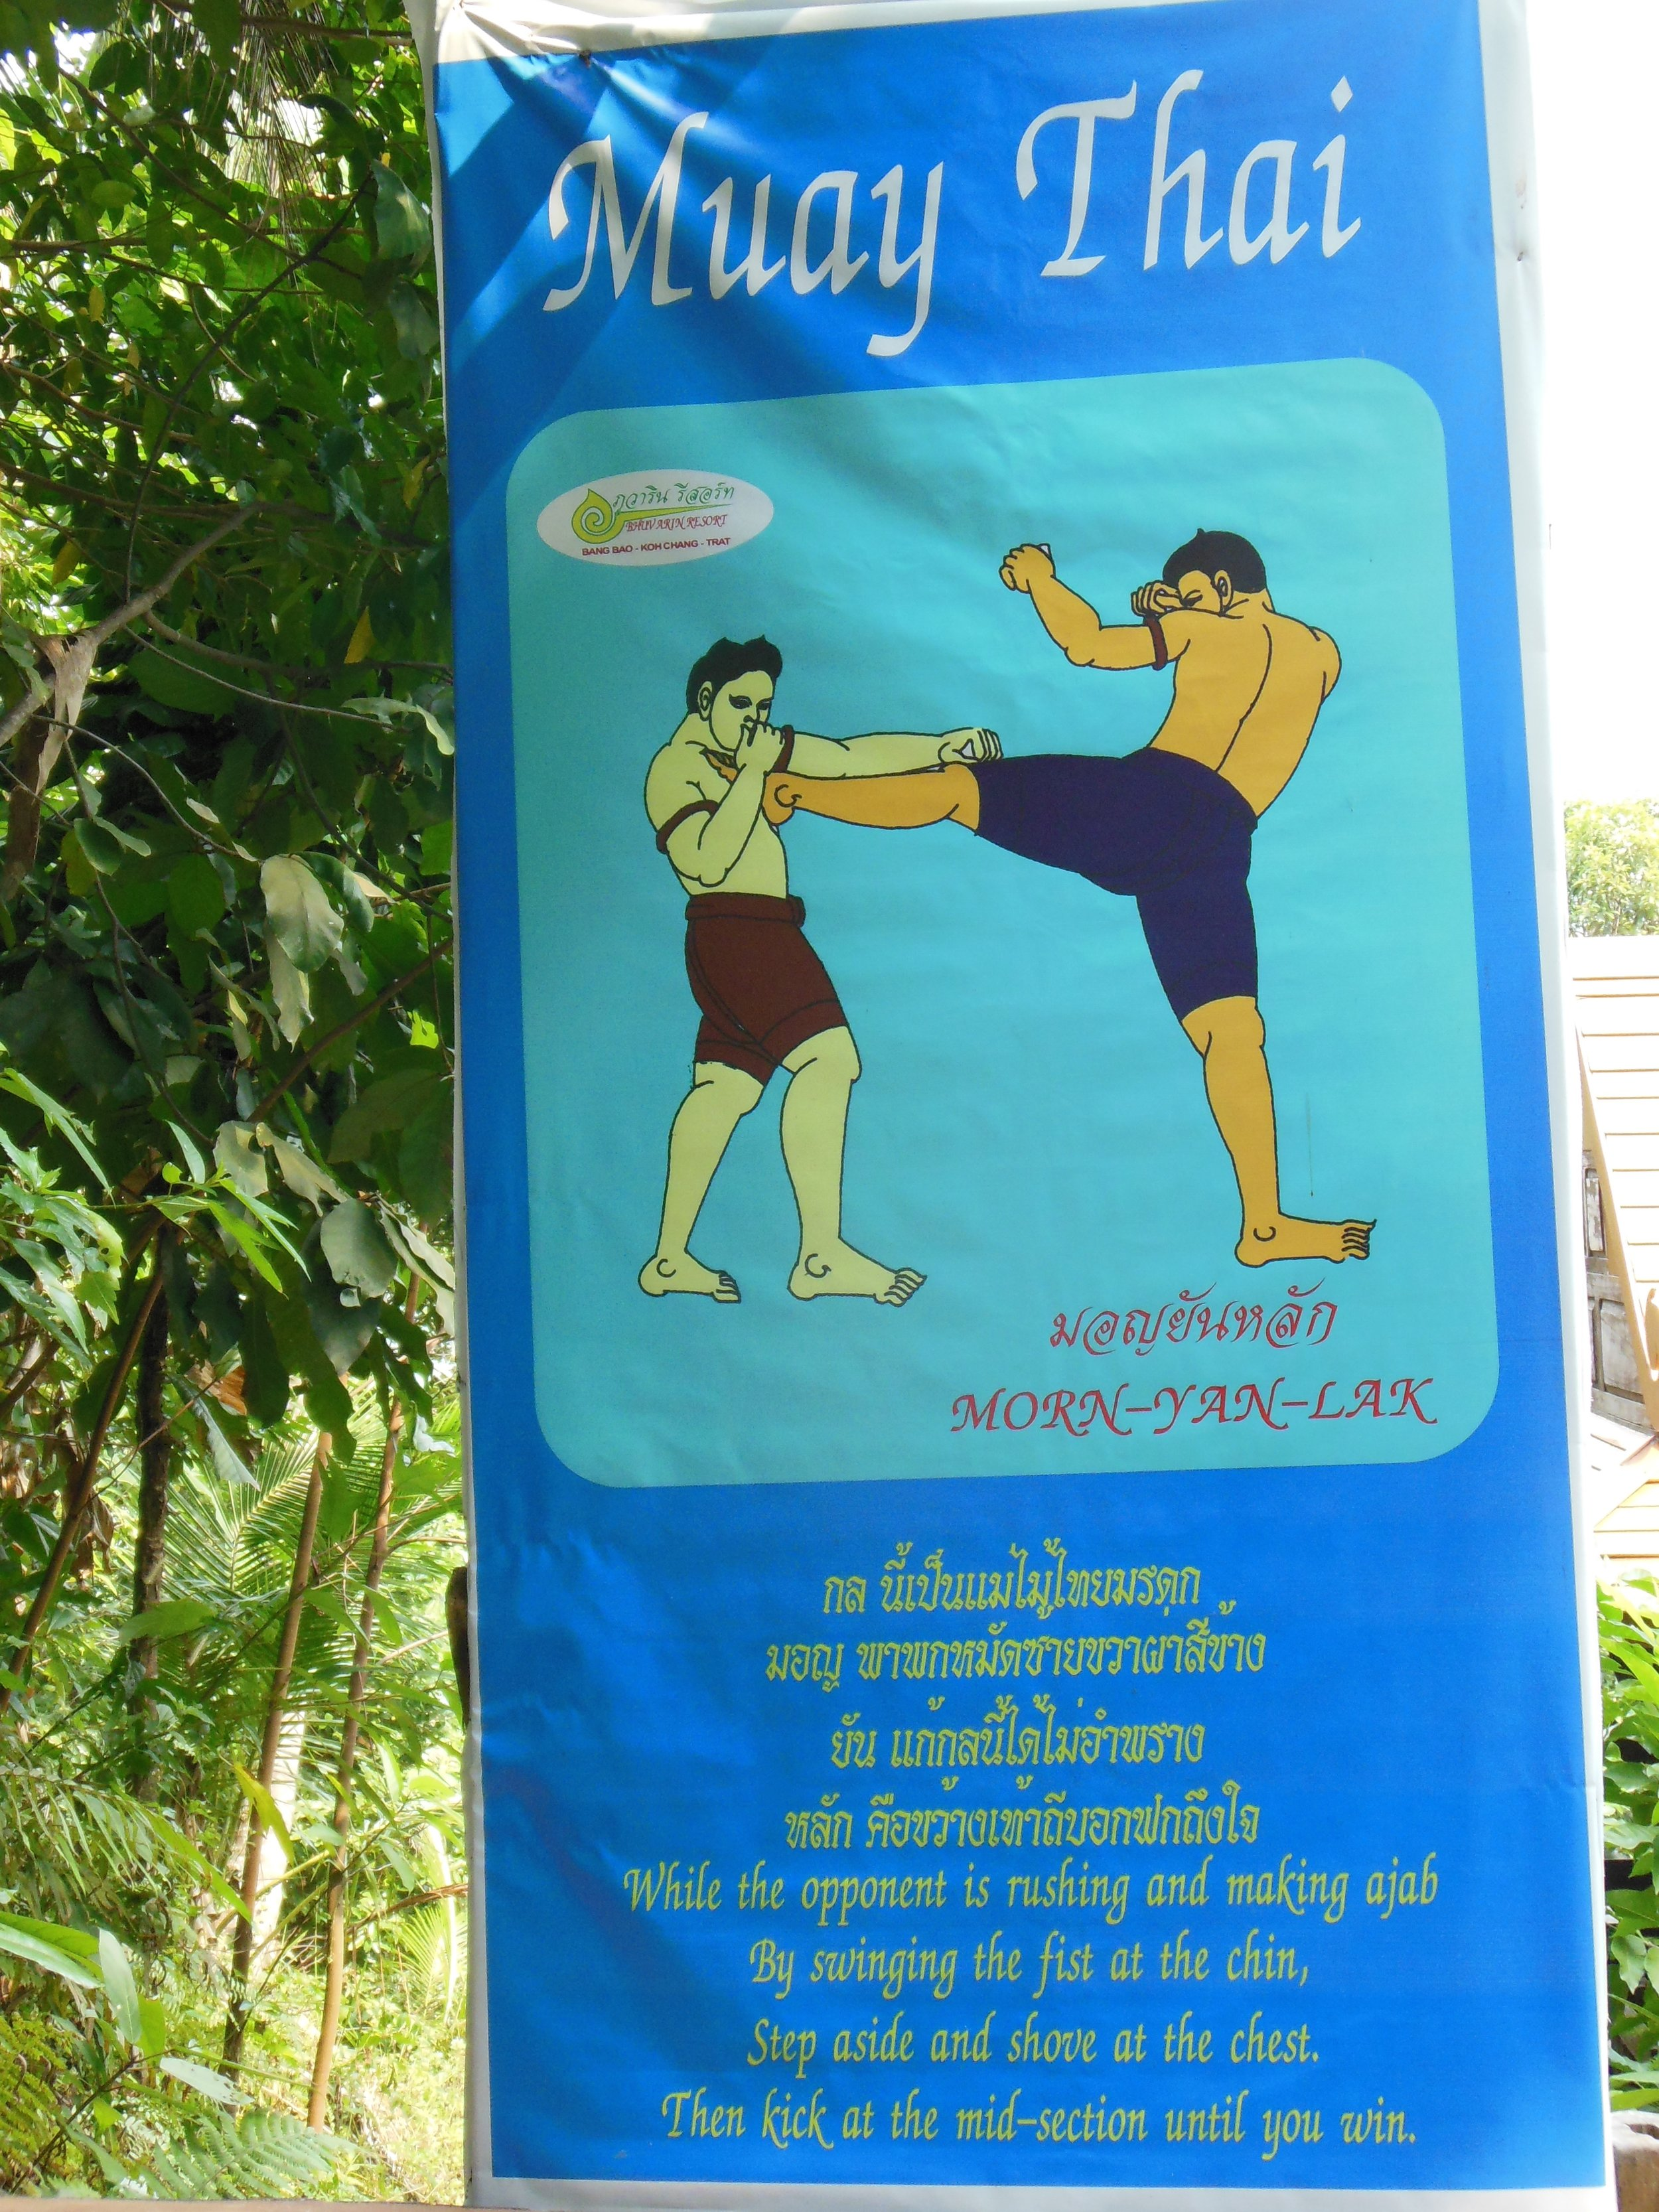 Just kidding! Although Thai Boxing and Thai Massage do use a lot of the same body mechanics.